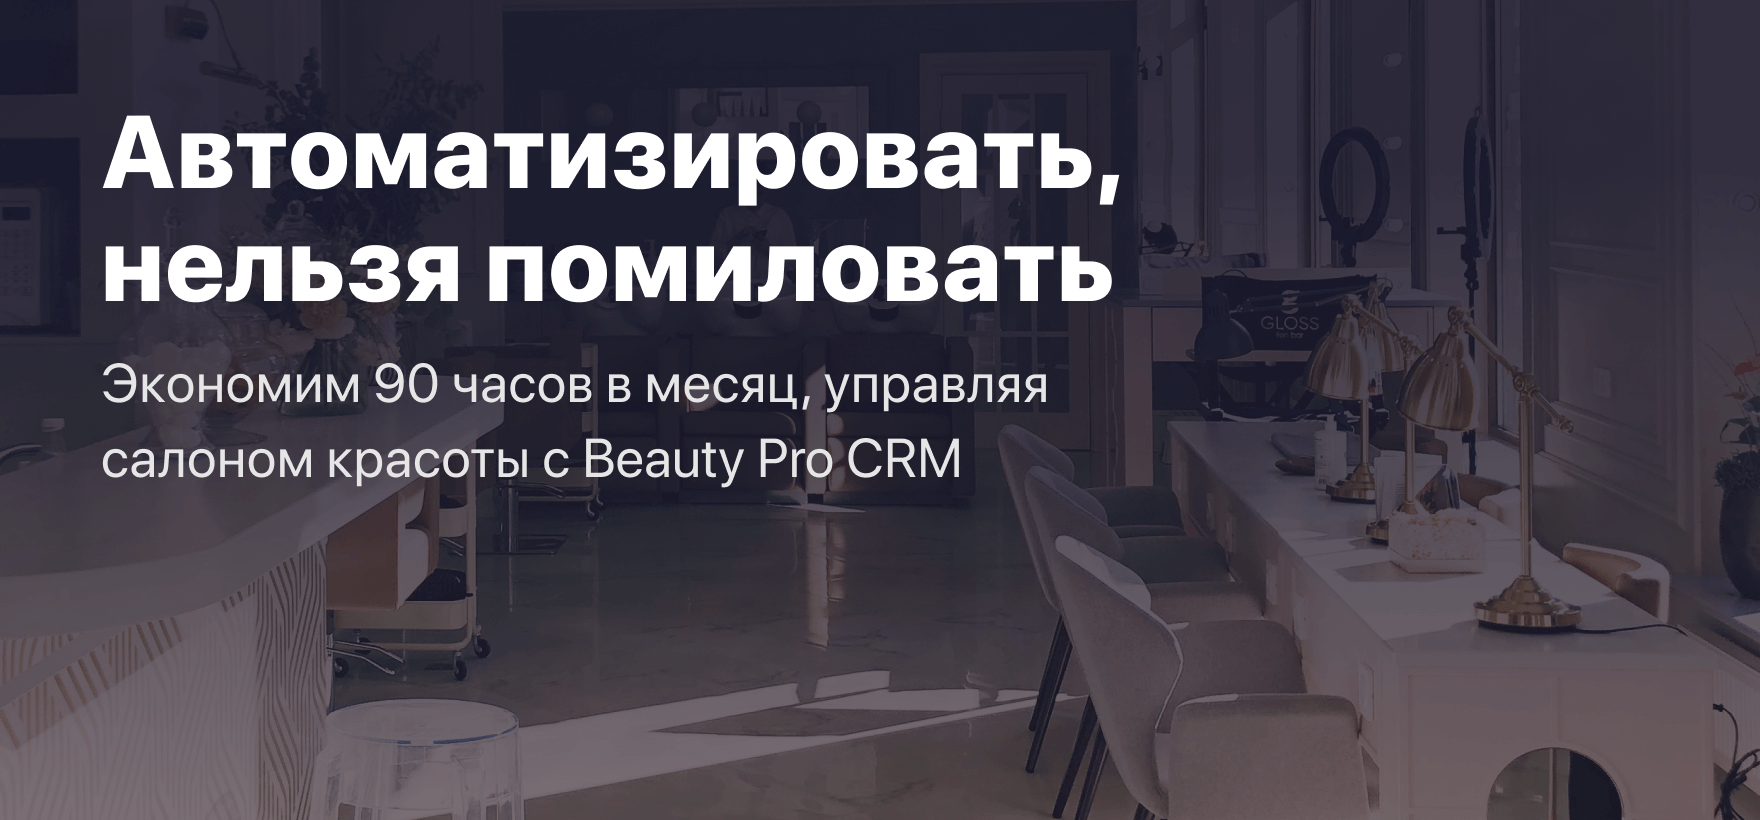 "<p class=""qtranxs-available-languages-message qtranxs-available-languages-message-en"">Sorry, this entry is only available in <a href=""https://beautyprosoftware.com/ru/blog/russkij-prajs-list-salona-krasoty-pravila-i-sekrety-oformlenija/"" class=""qtranxs-available-language-link qtranxs-available-language-link-ru"" title=""Русский"">Russian</a>.</p>"